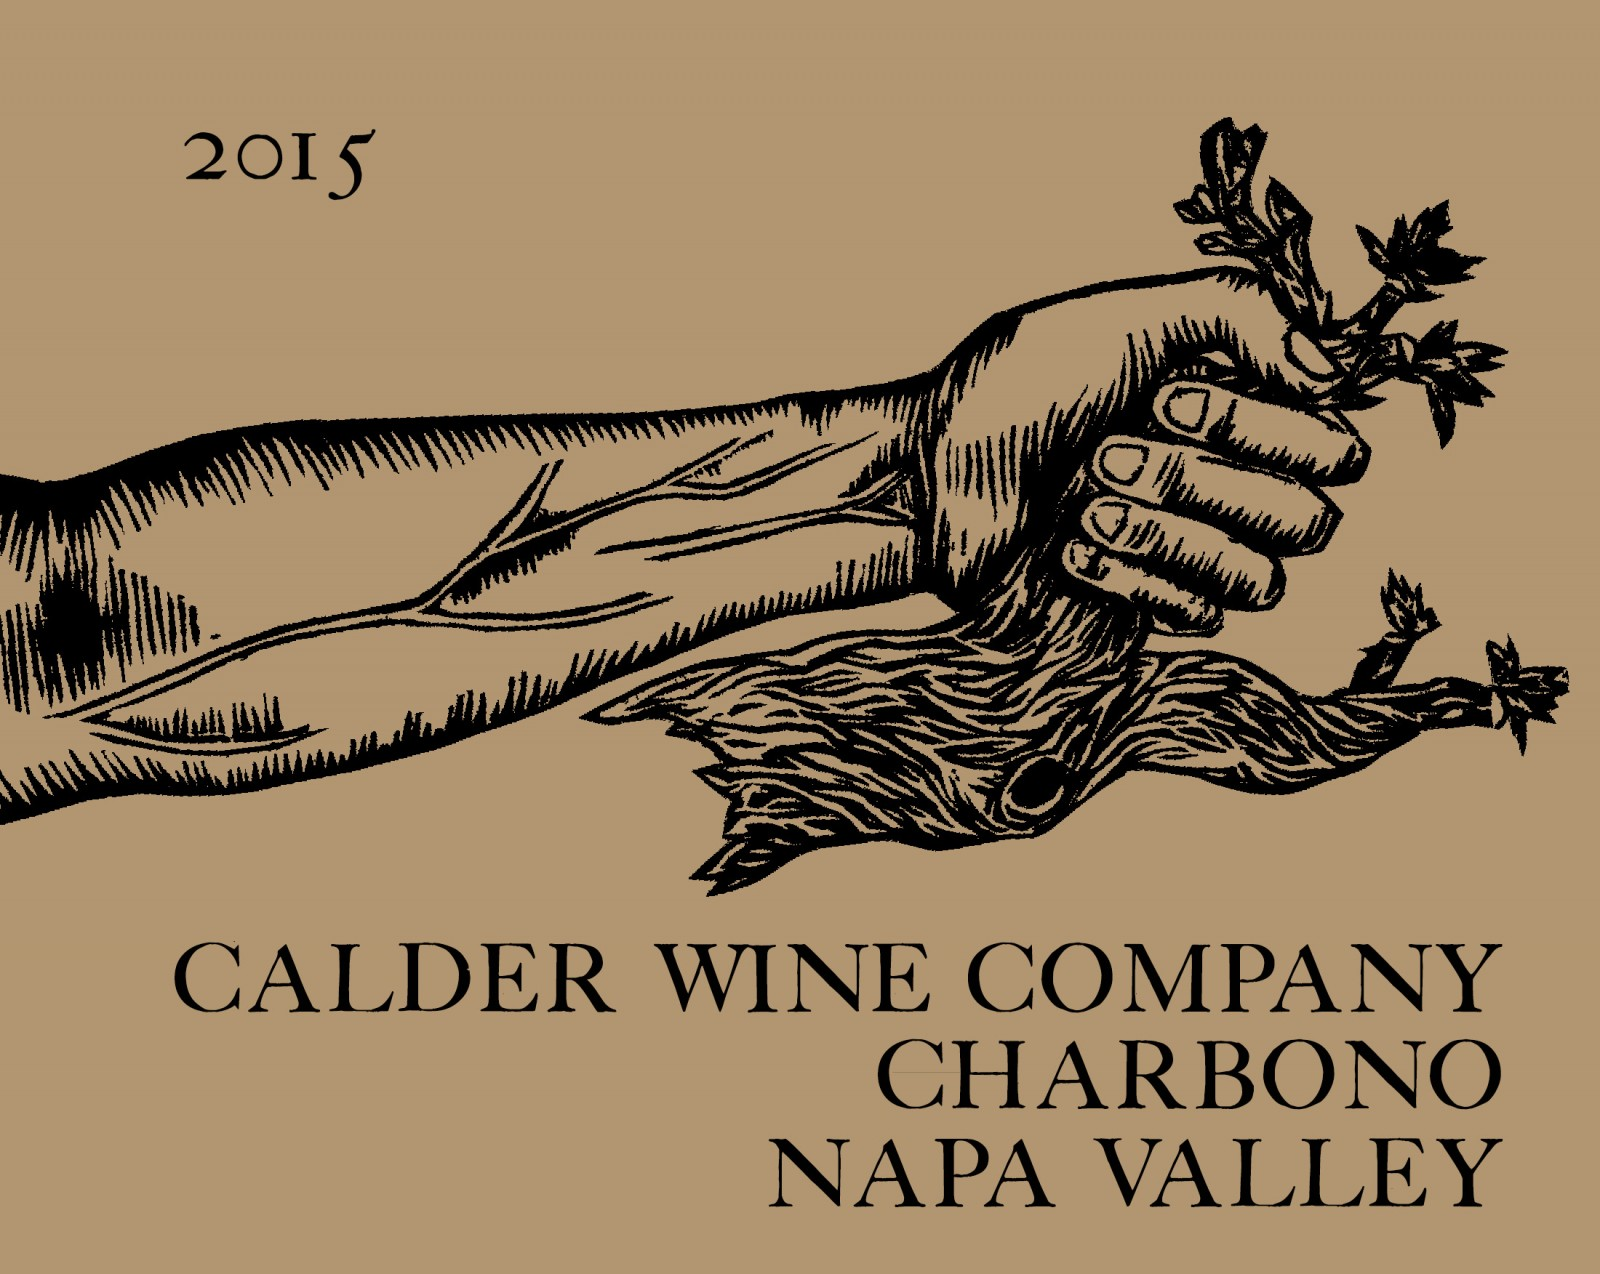 2015 Charbono - Magnum Rutherford, Napa Valley - Calder Wine Company